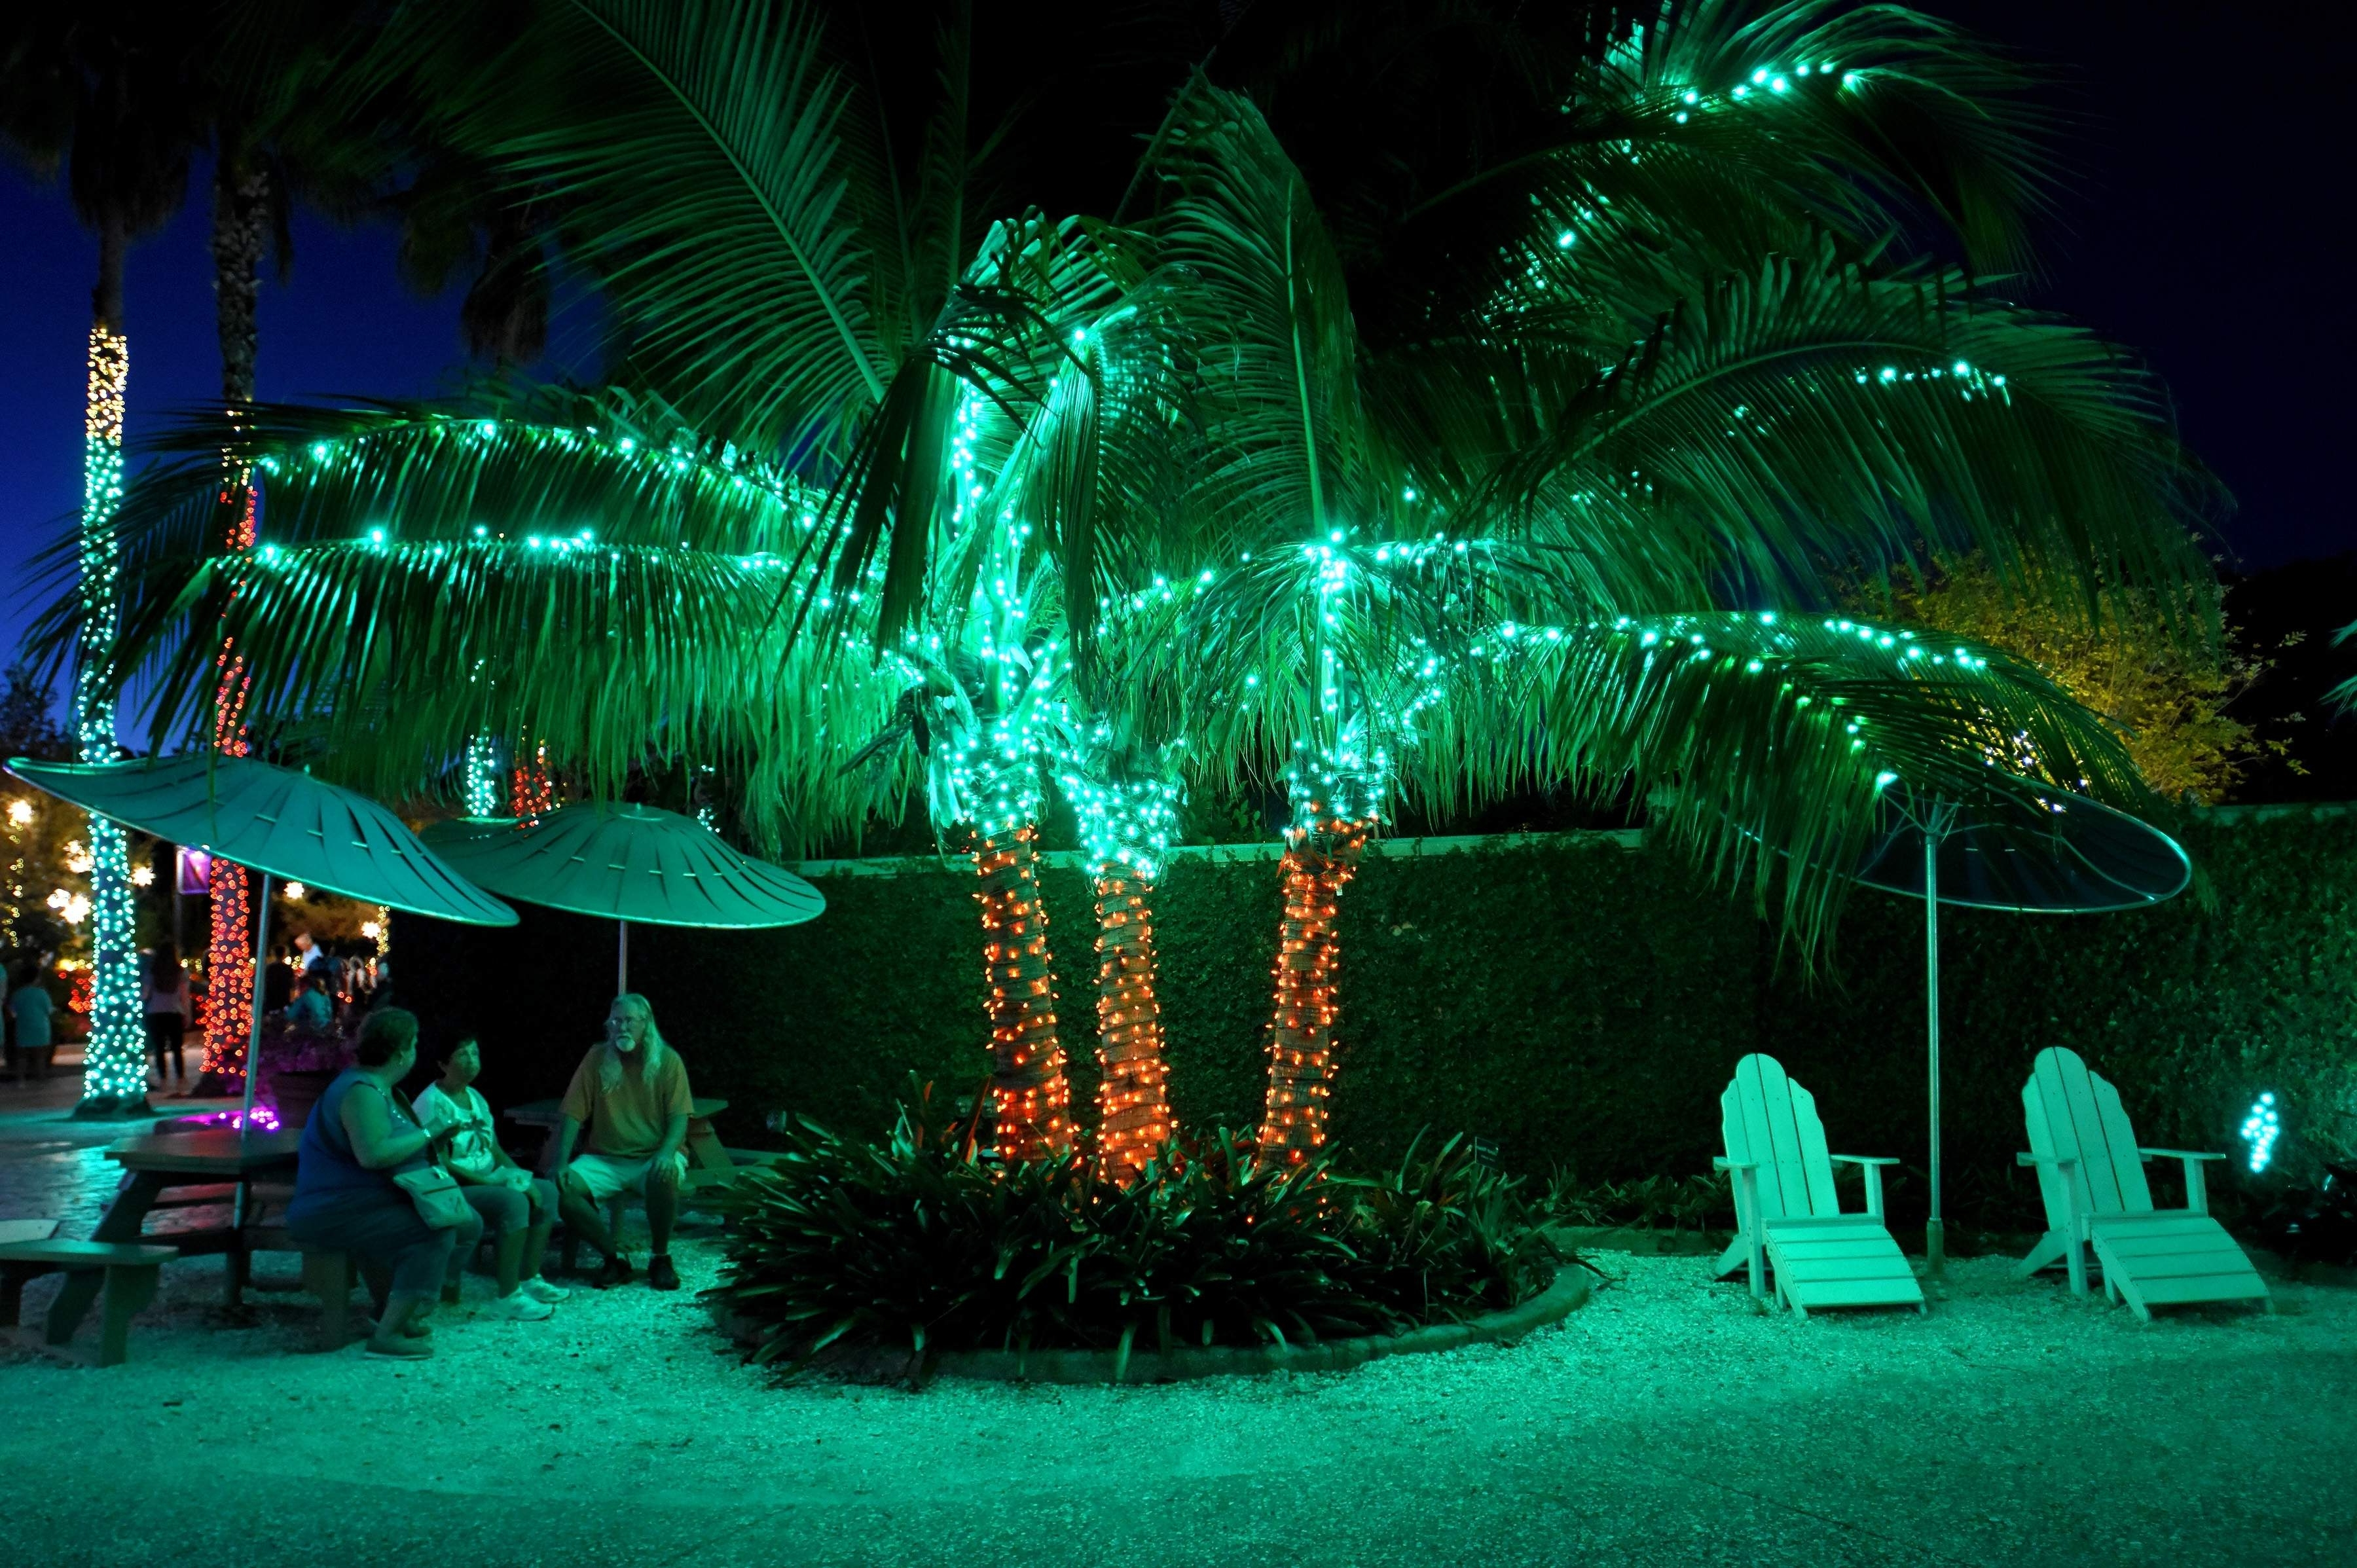 Famous Hundreds Of Thousands Of Lights On Display At Florida Botanical Within Botanical Garden Lights (View 13 of 20)